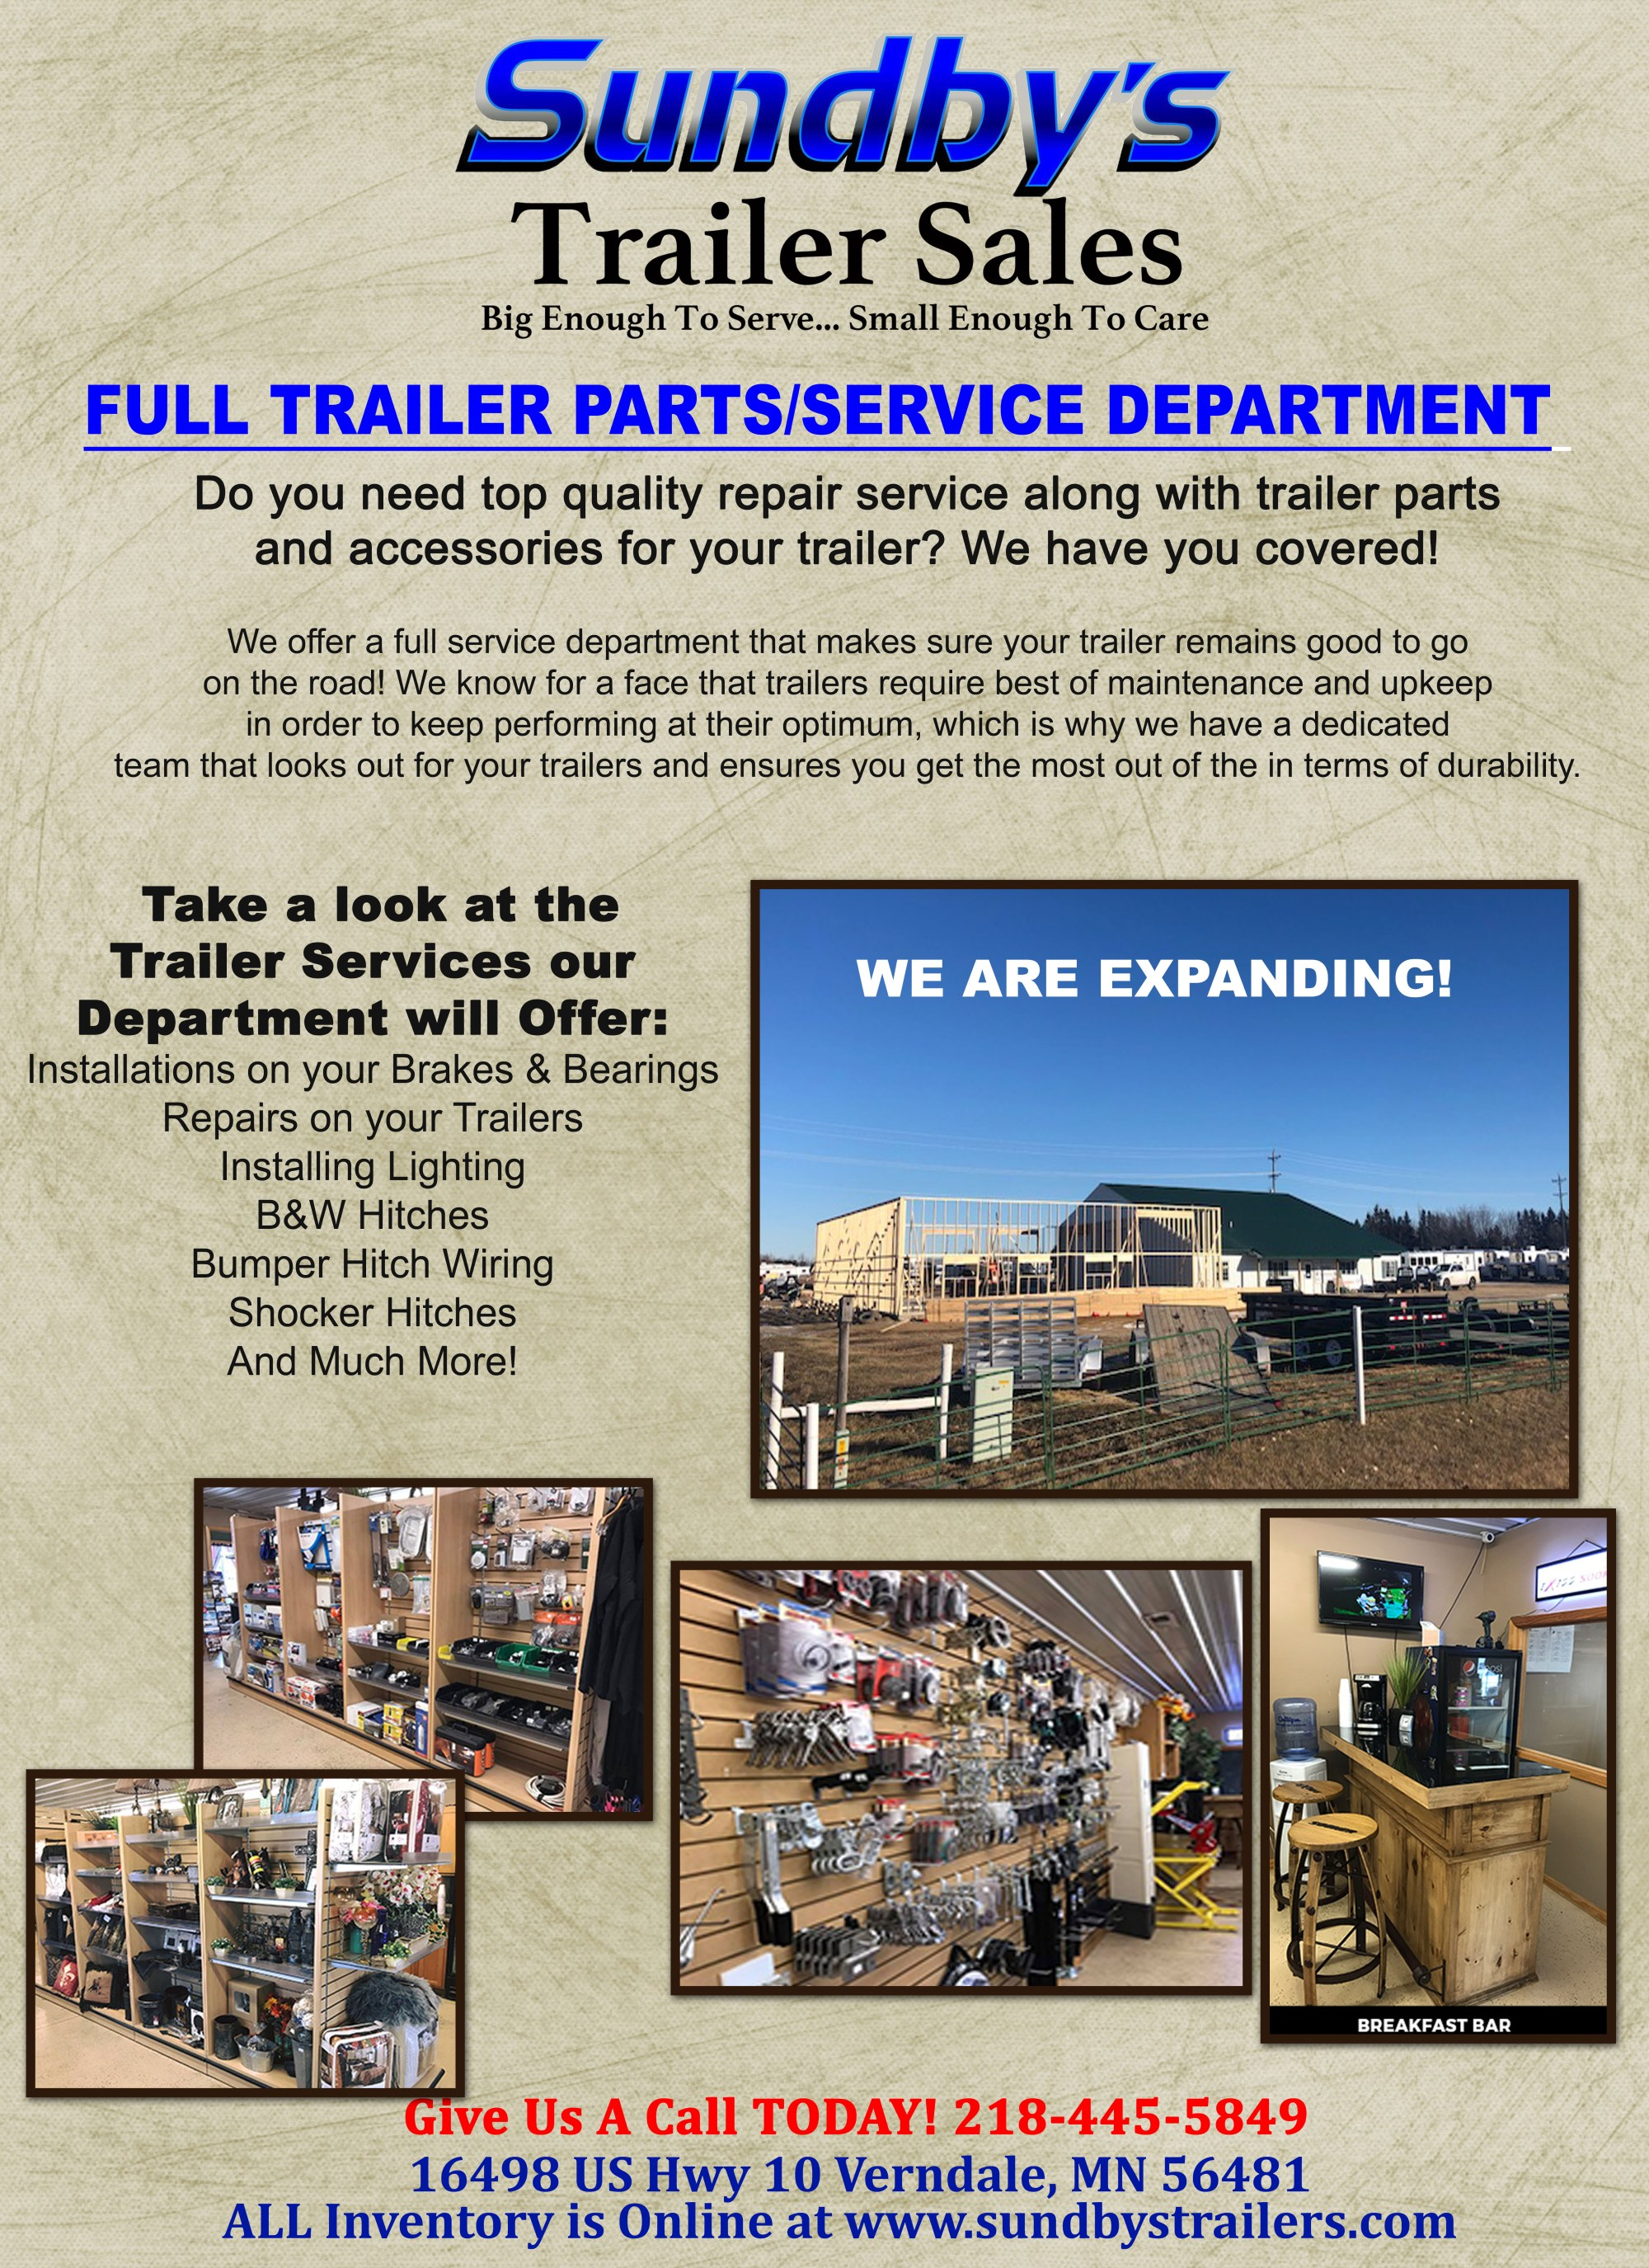 hight resolution of providing not only services sundby s also give customers a vast inventory of trailers part to choose from as well our trailer parts are made from the best